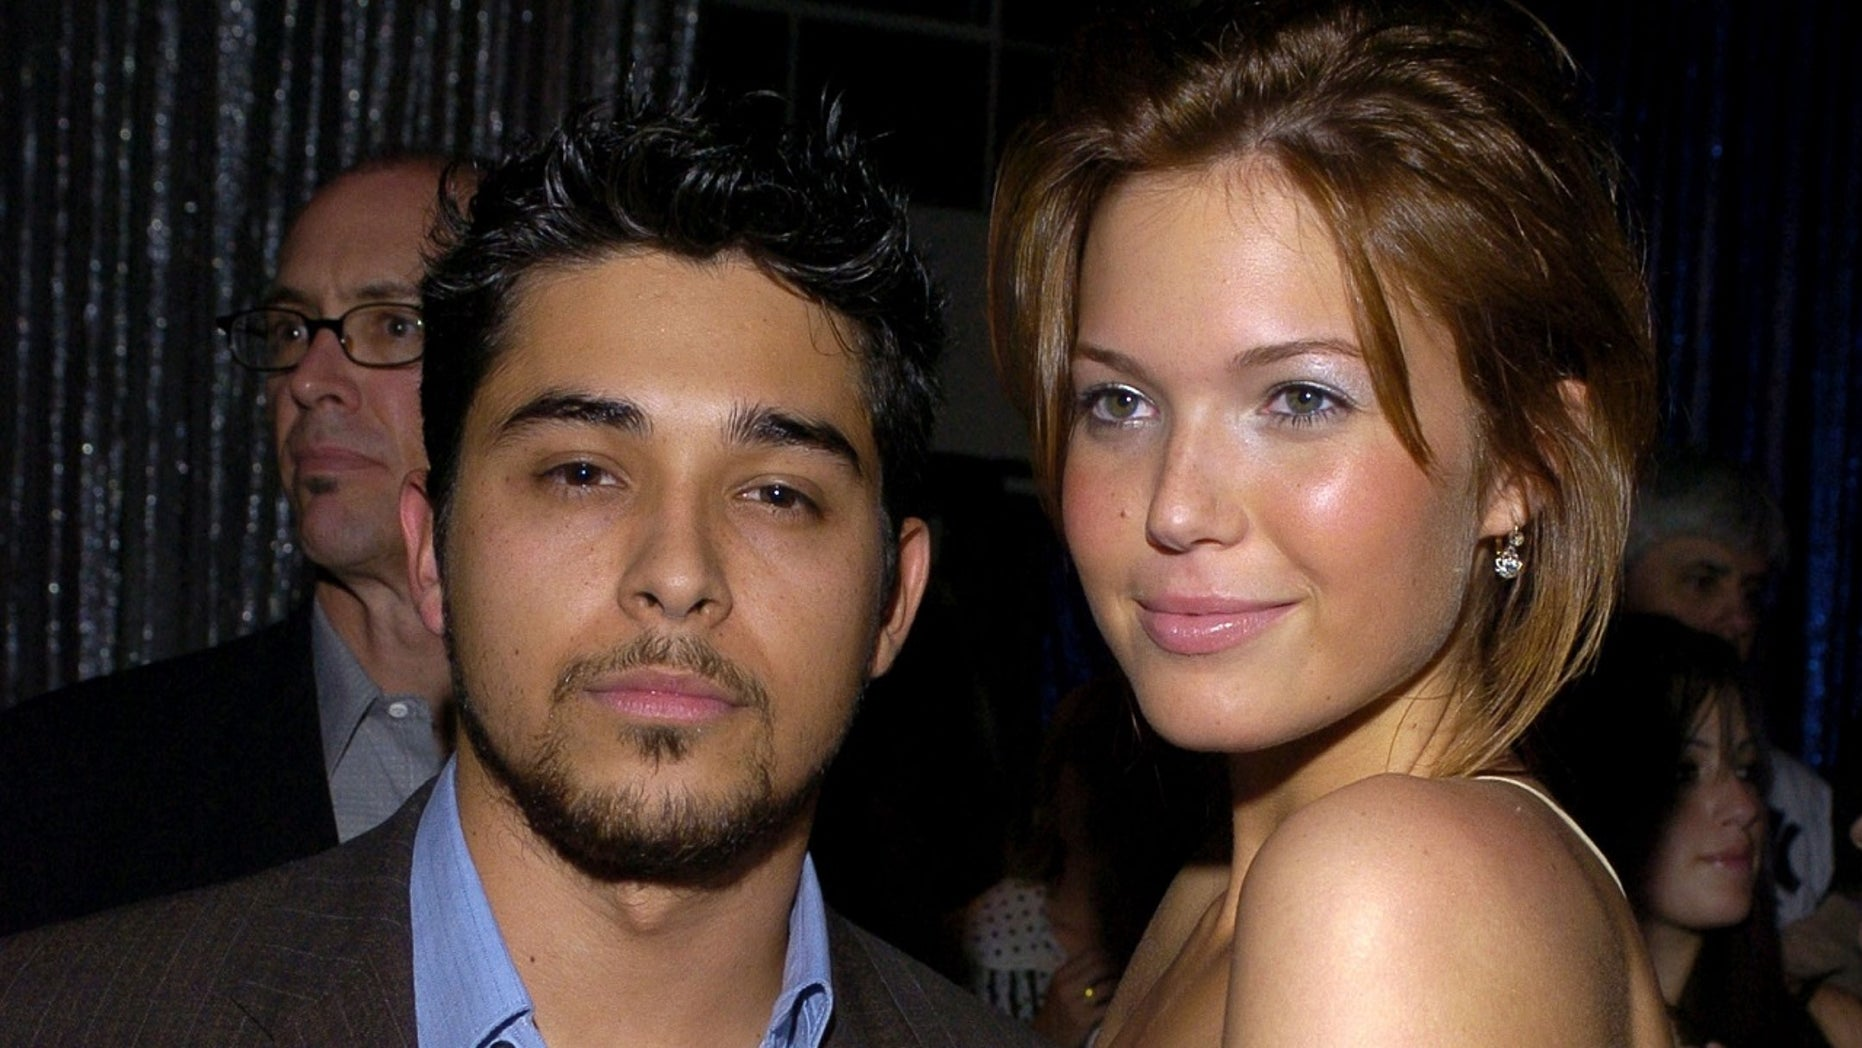 Wilmer Valderrama and Mandy Moore shared a sweet photo from their reunion this past weekend.